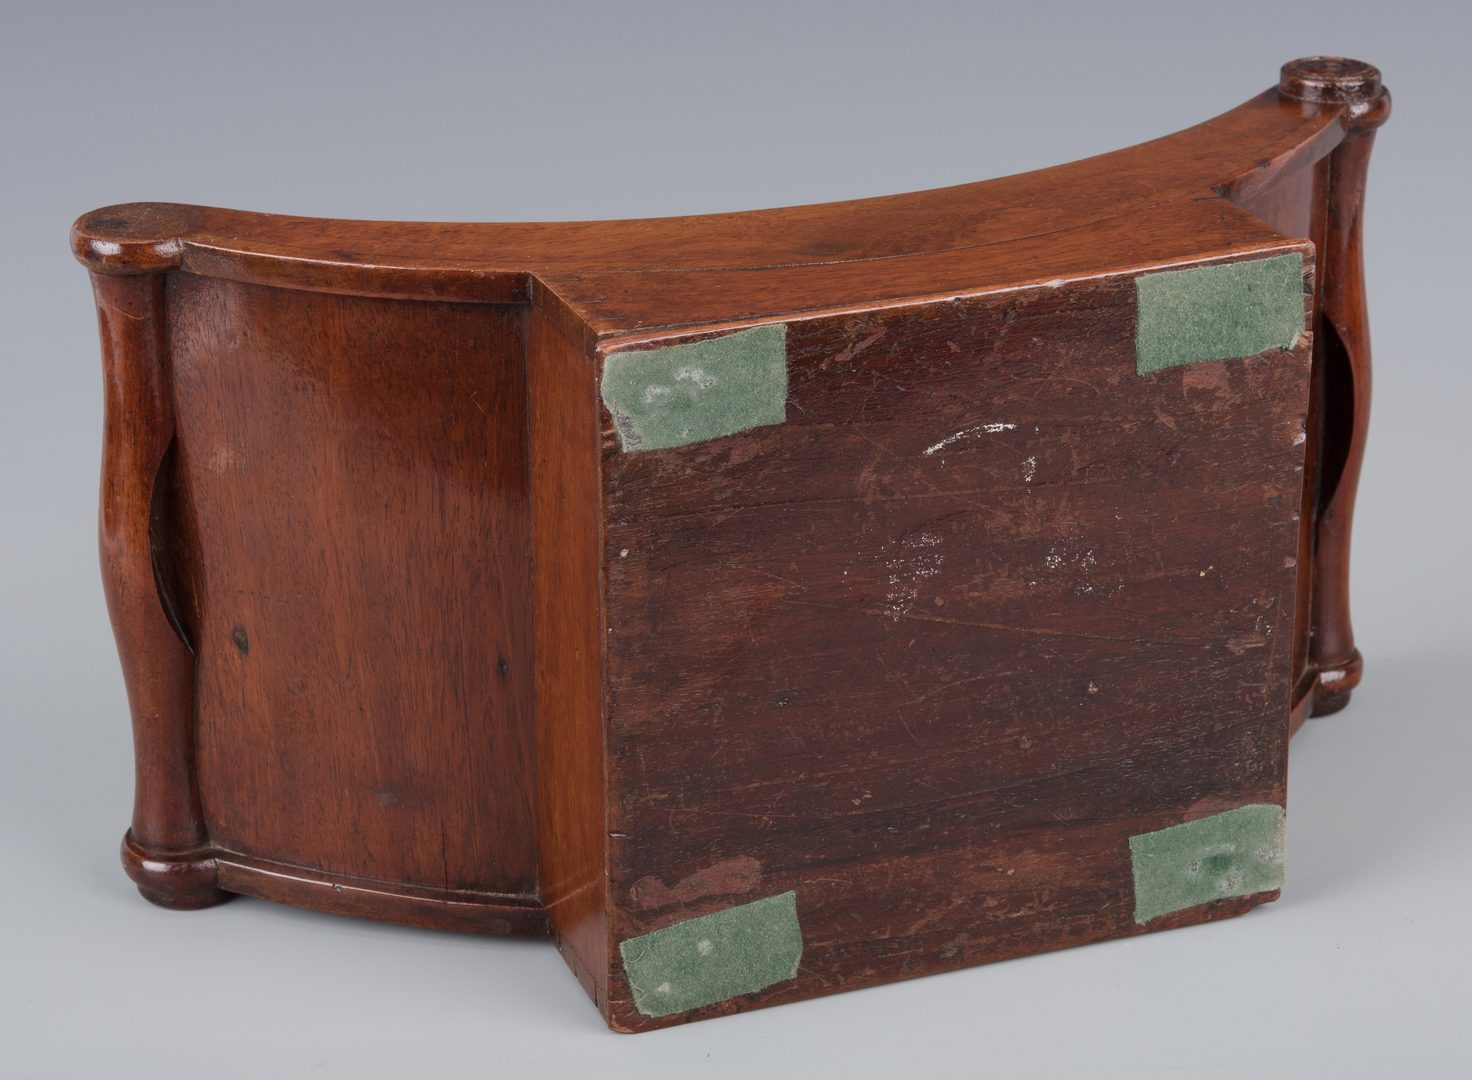 Lot 143: Tea Caddy, Cheese Coaster, and Classical Urns